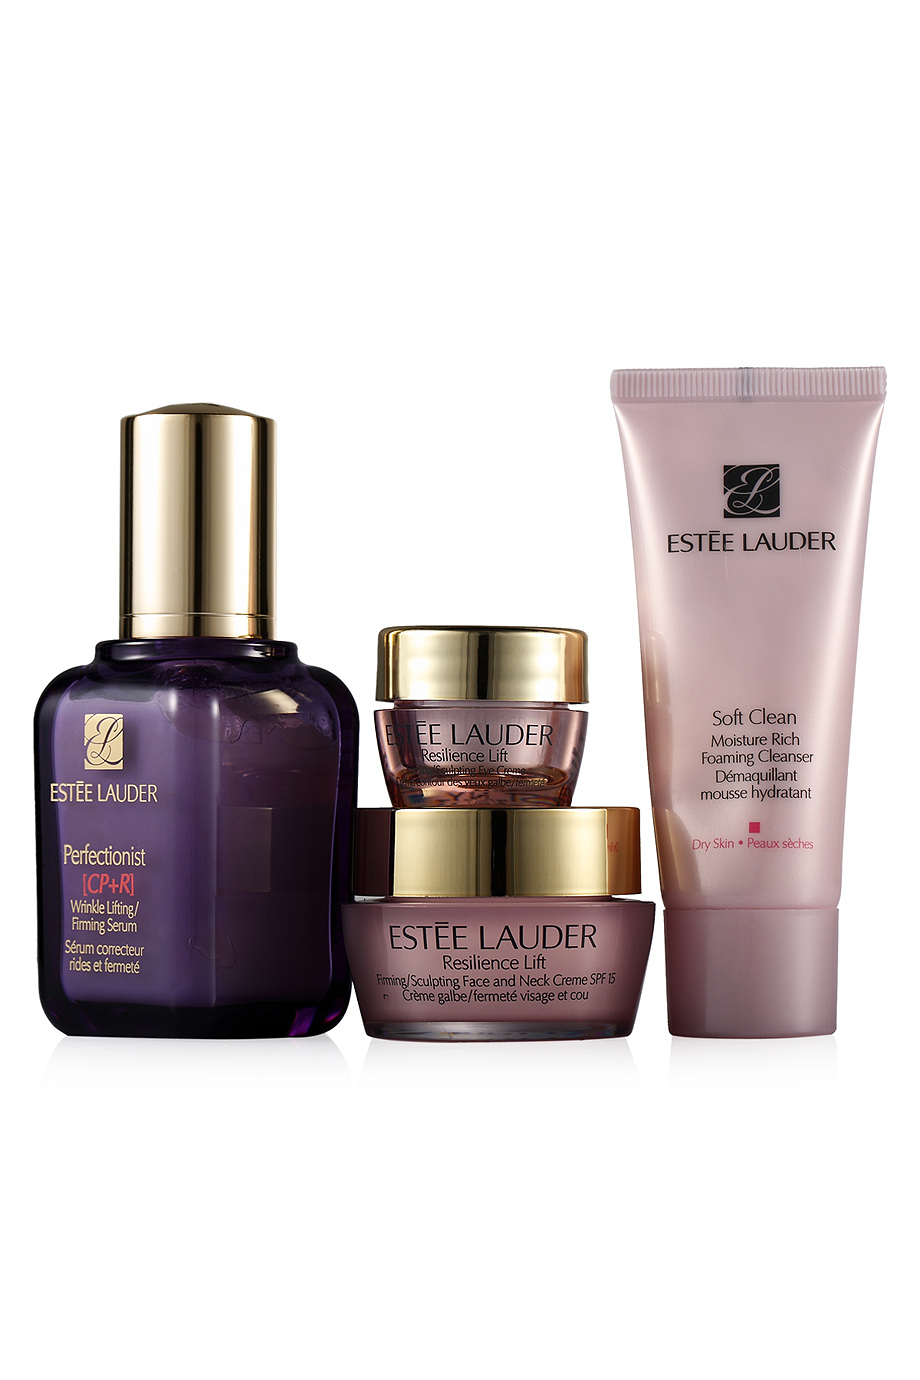 ESTEE LAUDER LIFTING/FIRMING SOLUTIONS SET